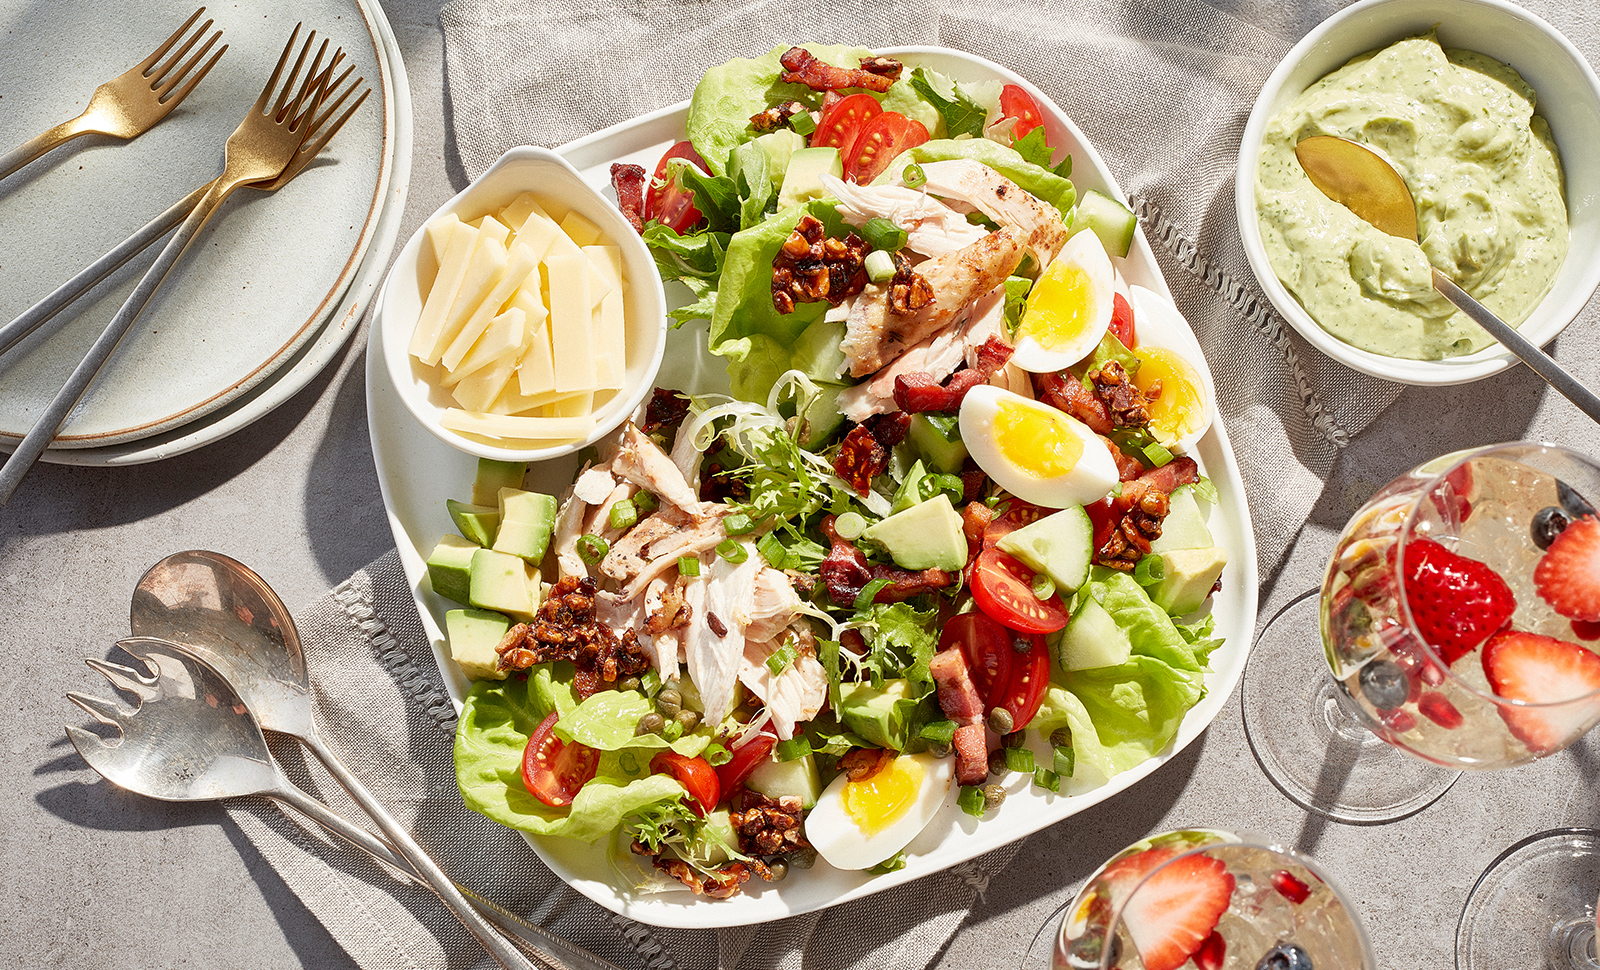 A colorful brunch salad made of mixed greens, sliced eggs, avocado cubes, tomatoes with a small bowl of sliced cheese.